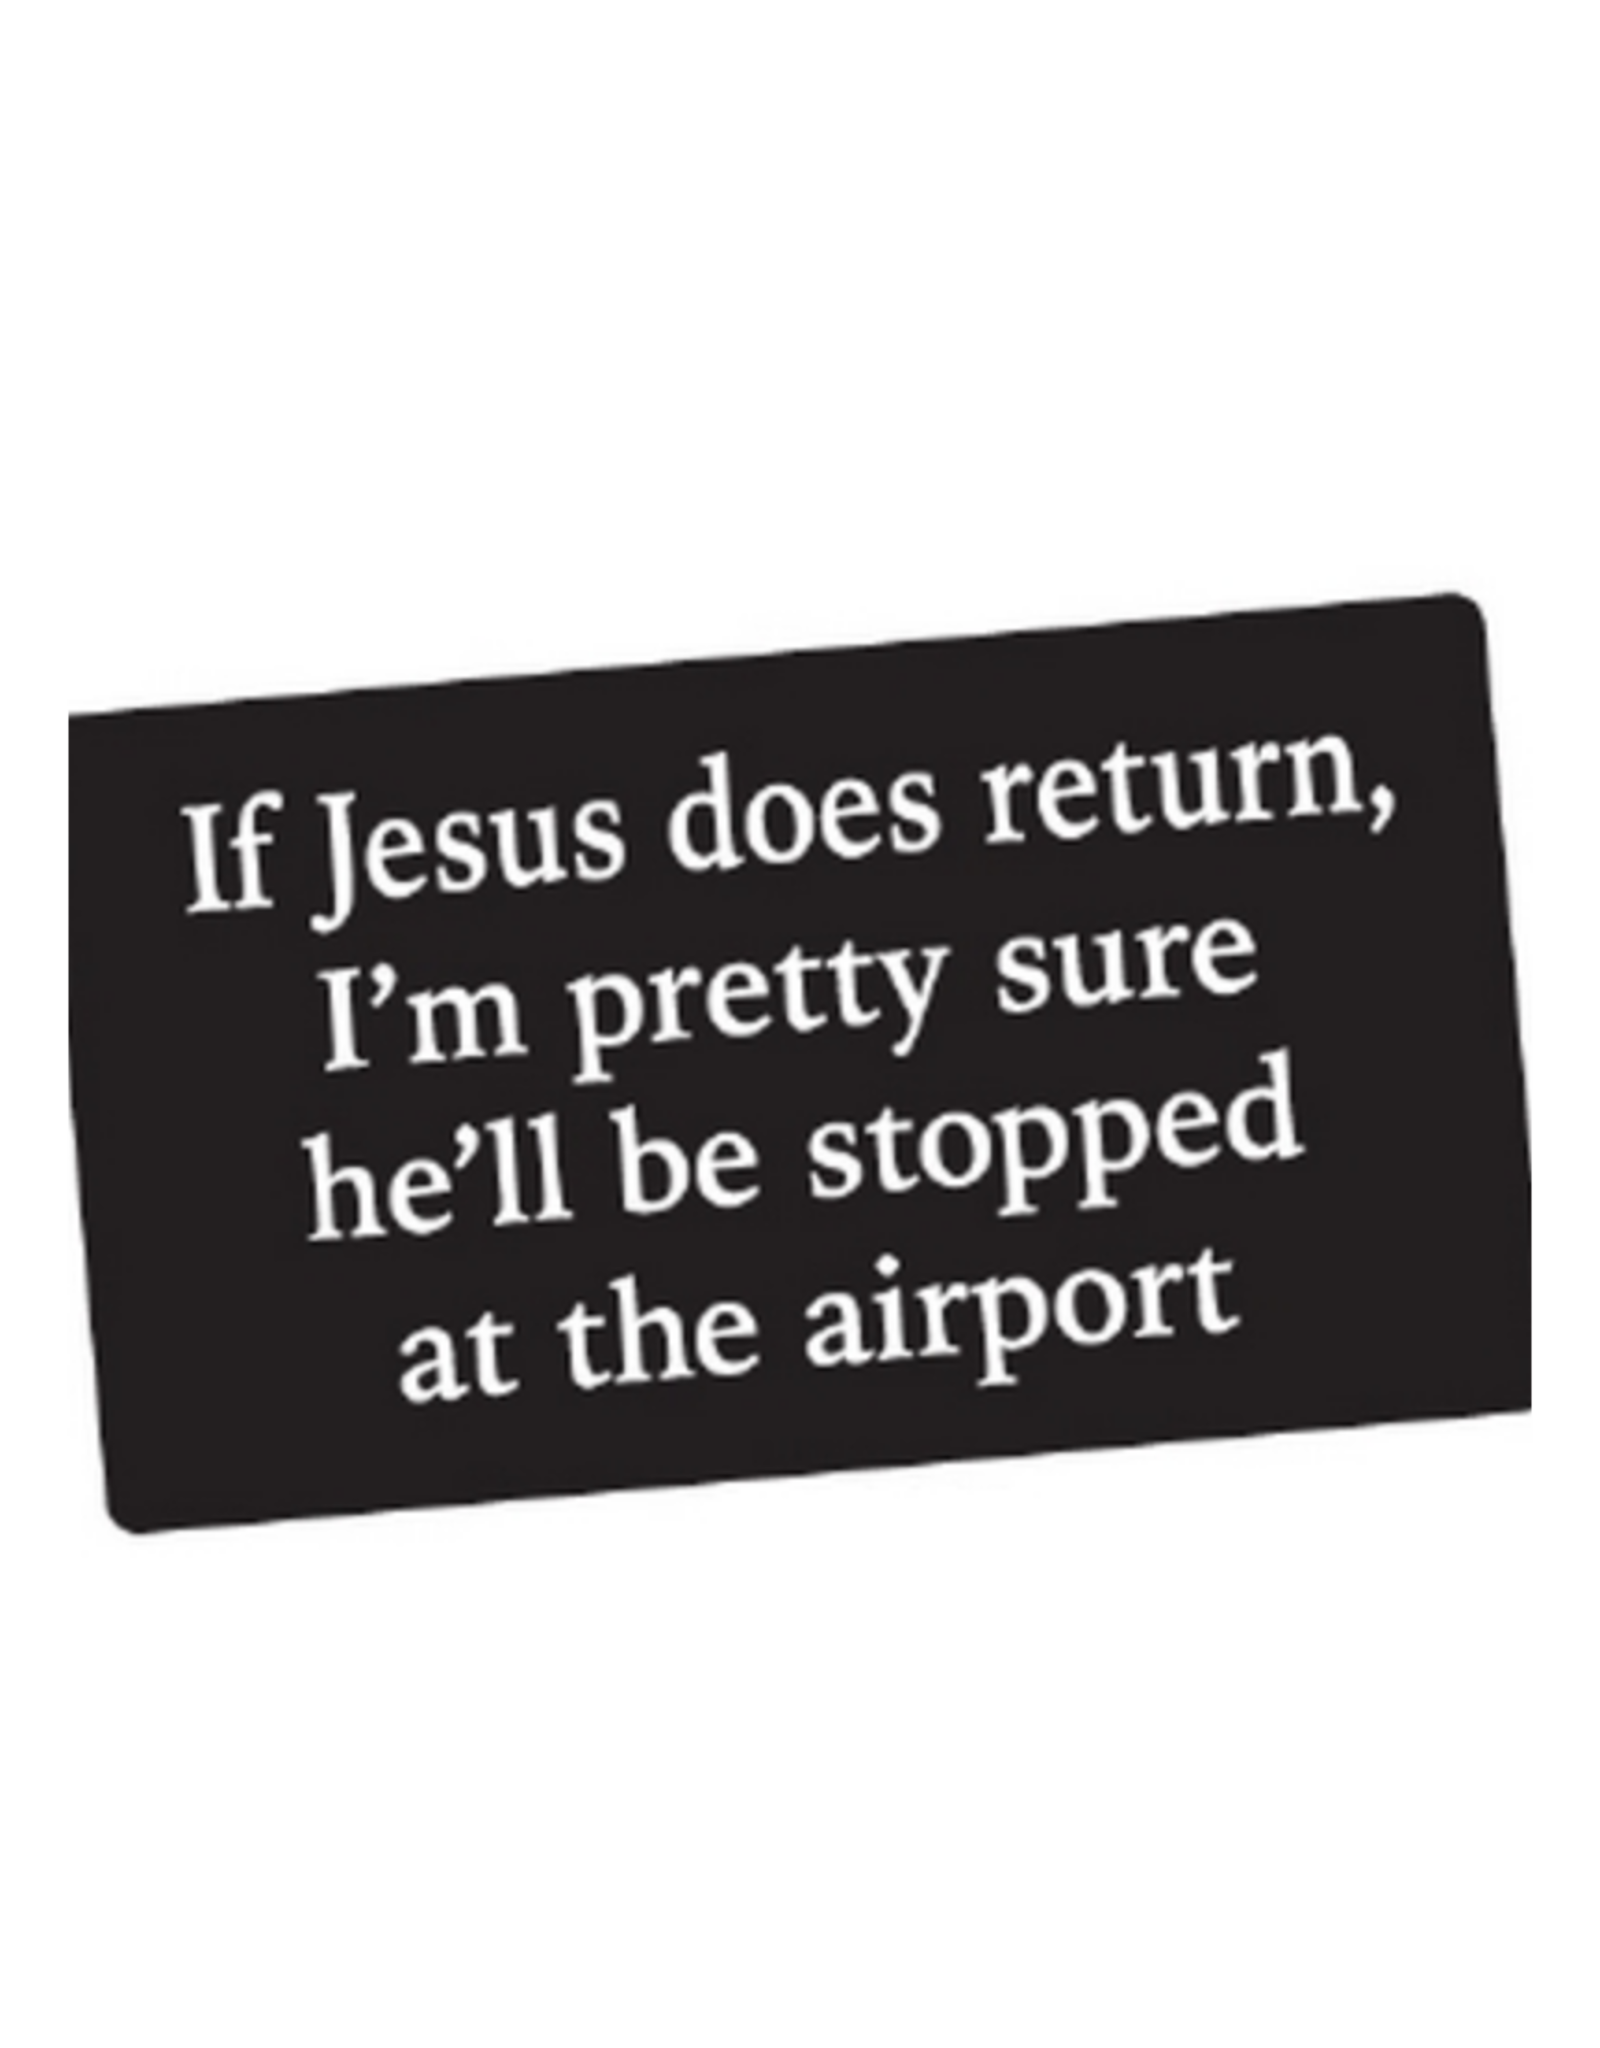 If Jesus Does Return, I'm Pretty Sure He'll Be Stopped at the Airport Bumper Sticker